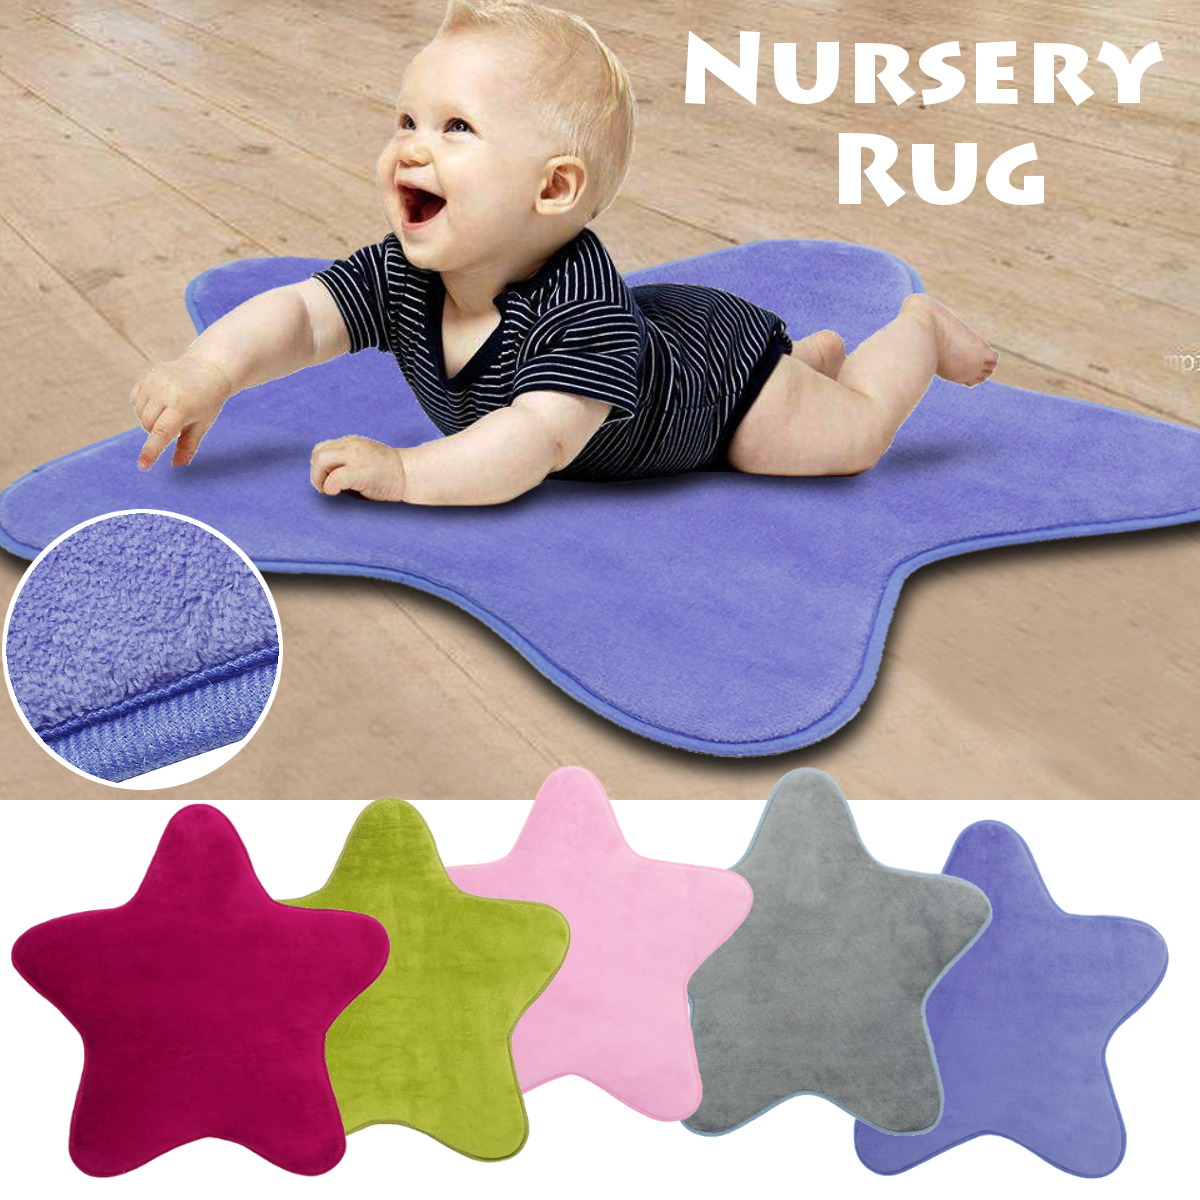 Star Kids Play Mat Baby Rug Anti Slip Comfortable Floor Cotton Crawl Carpet Nursery Rug For Children Room Decoration HomeTextile | Happy Baby Mama